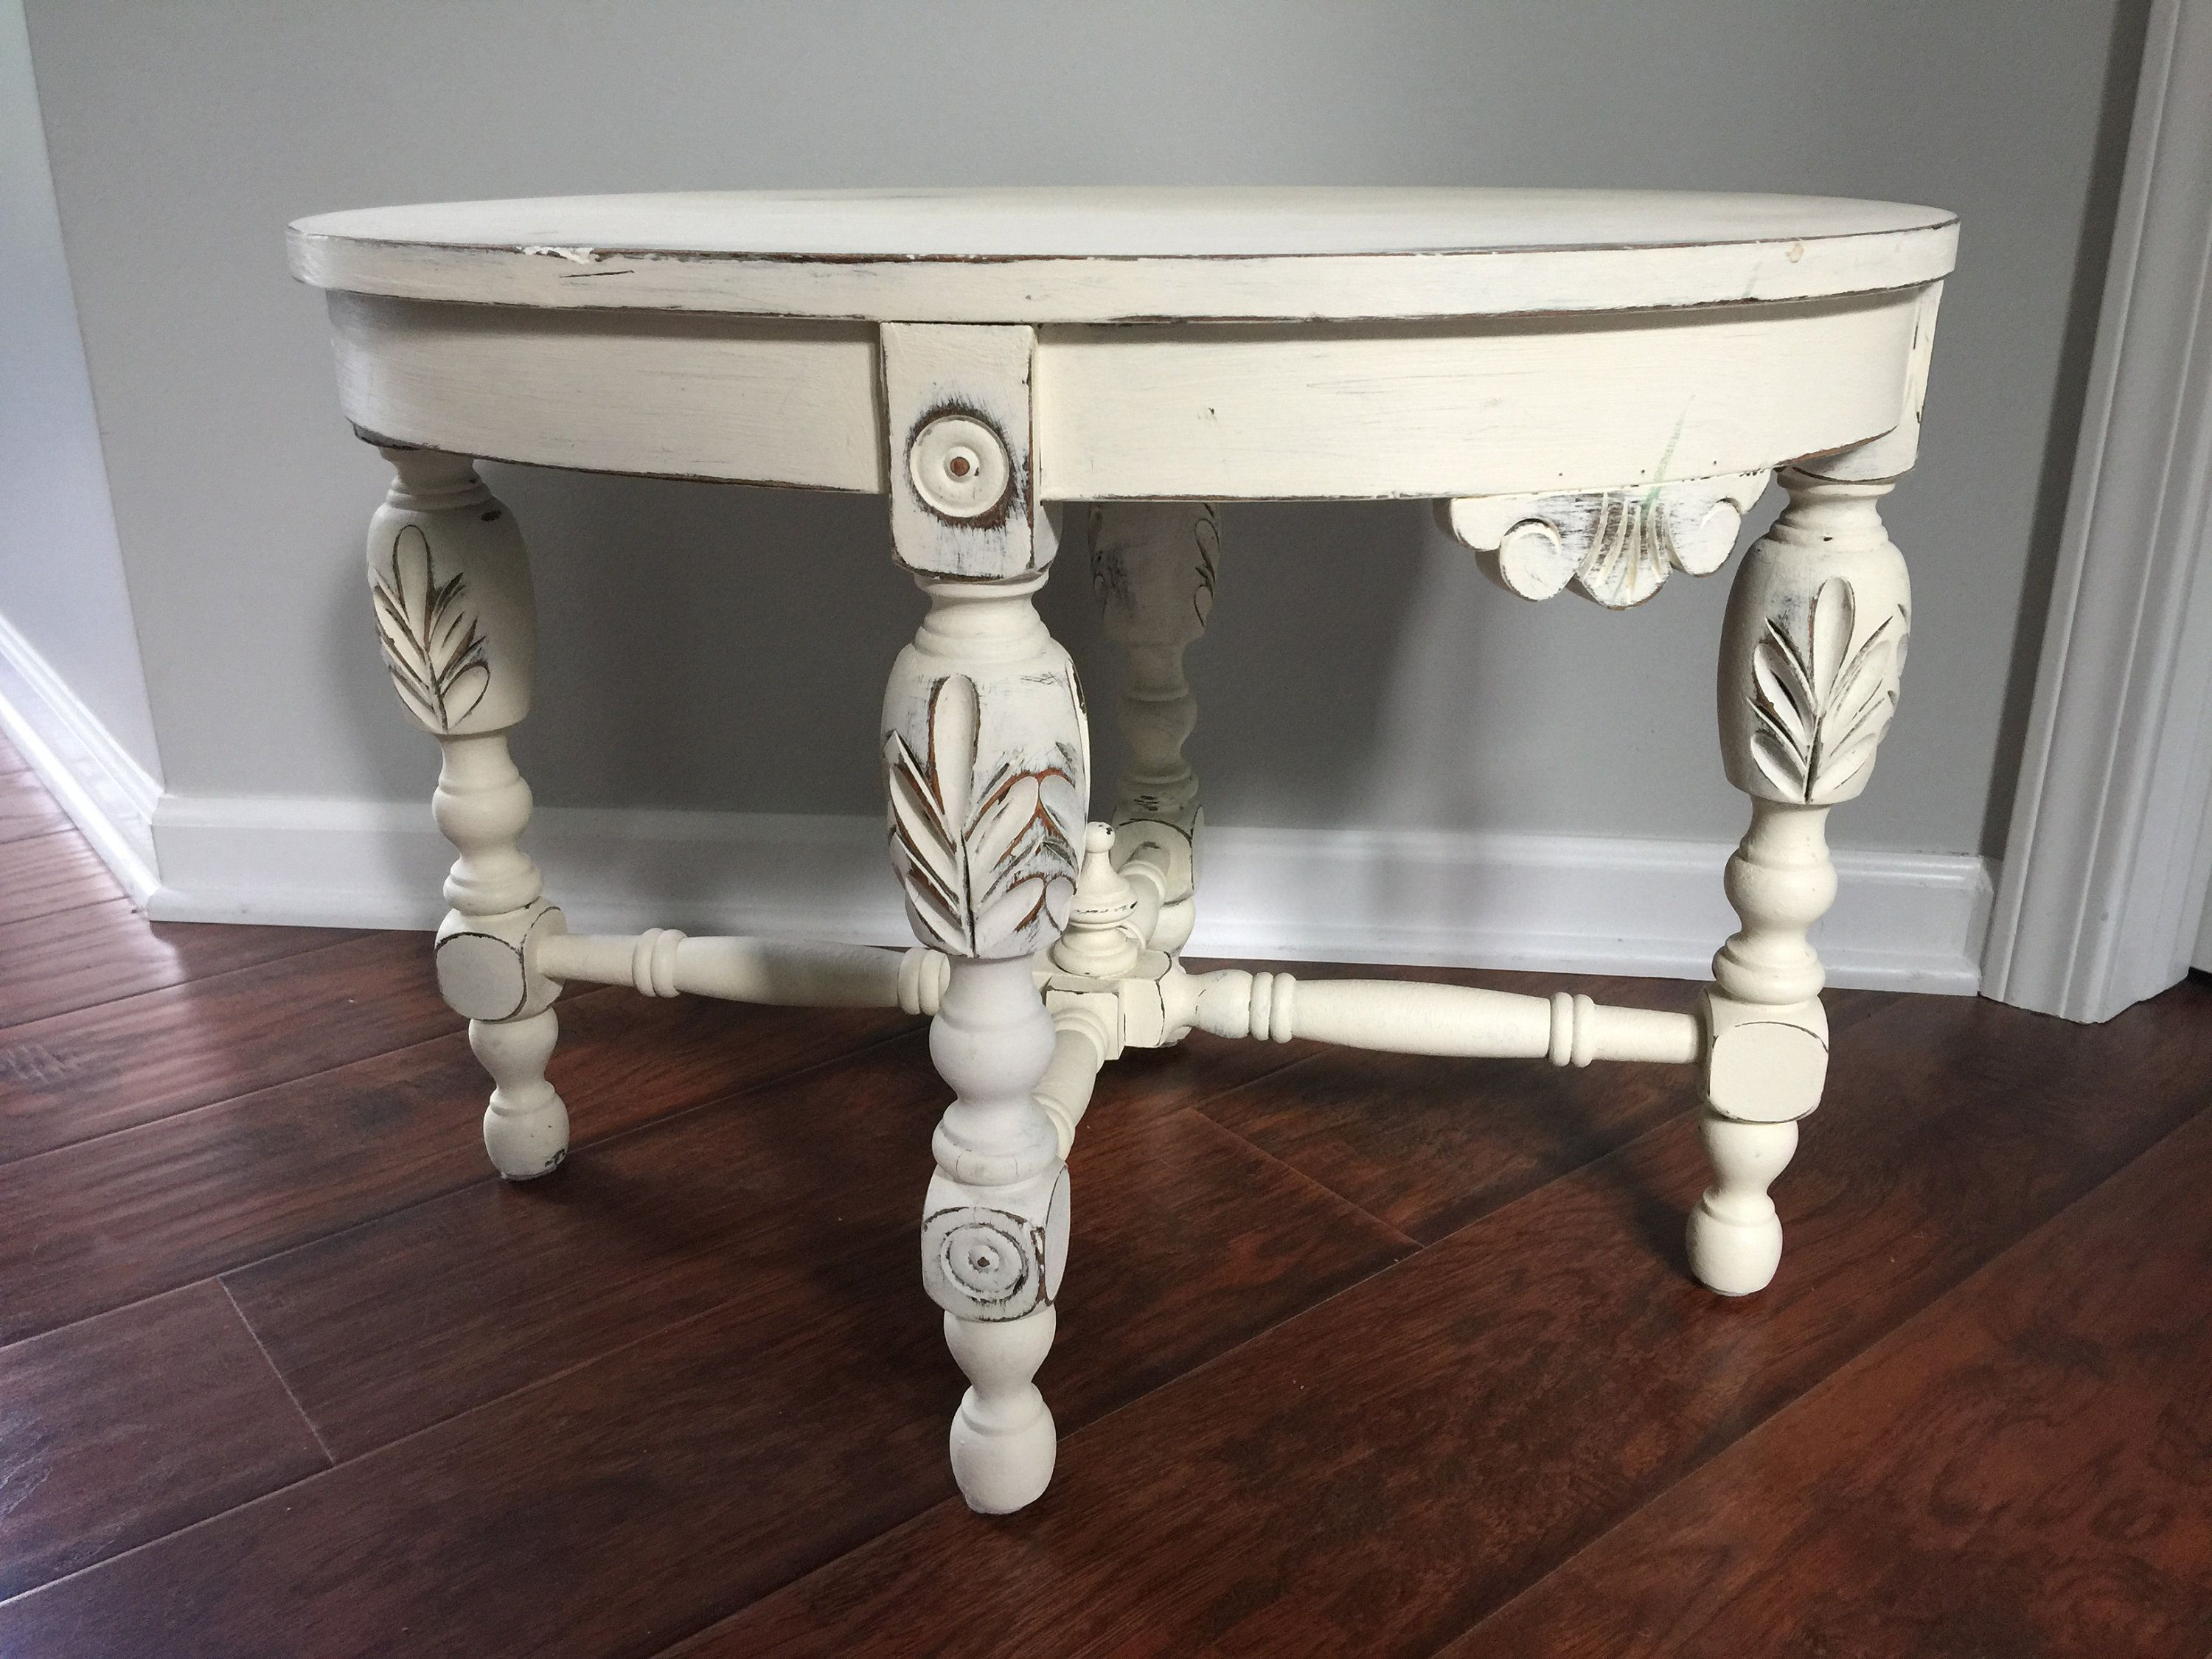 Carved Solid Wood Coffee Table Annie Sloan Off White Chalk Etsy Shabby Chic Furniture Coffee Table Wood Shabby Chic Furniture Painting [ 2250 x 3000 Pixel ]